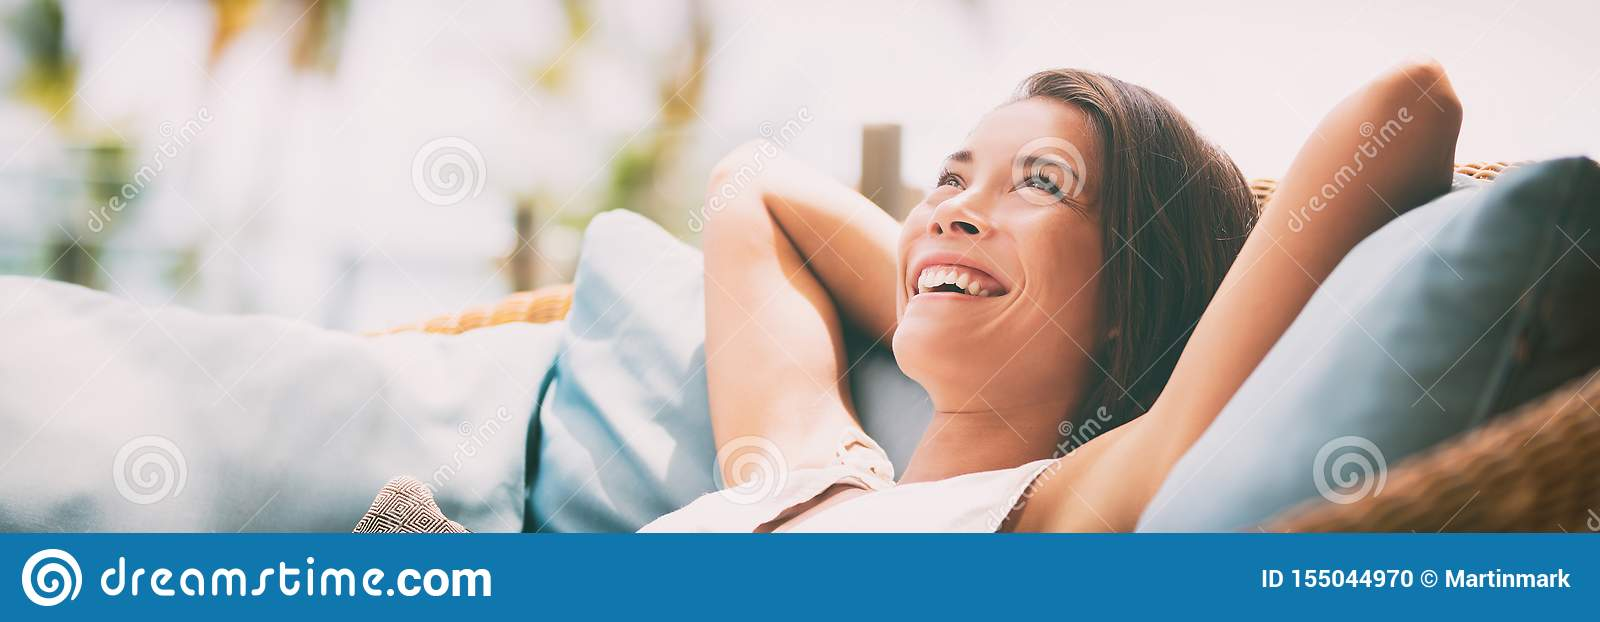 Relaxing home lifestyle happy woman in relax luxury hotel room sofa lying back with arms behind head smiling. Asian girl in